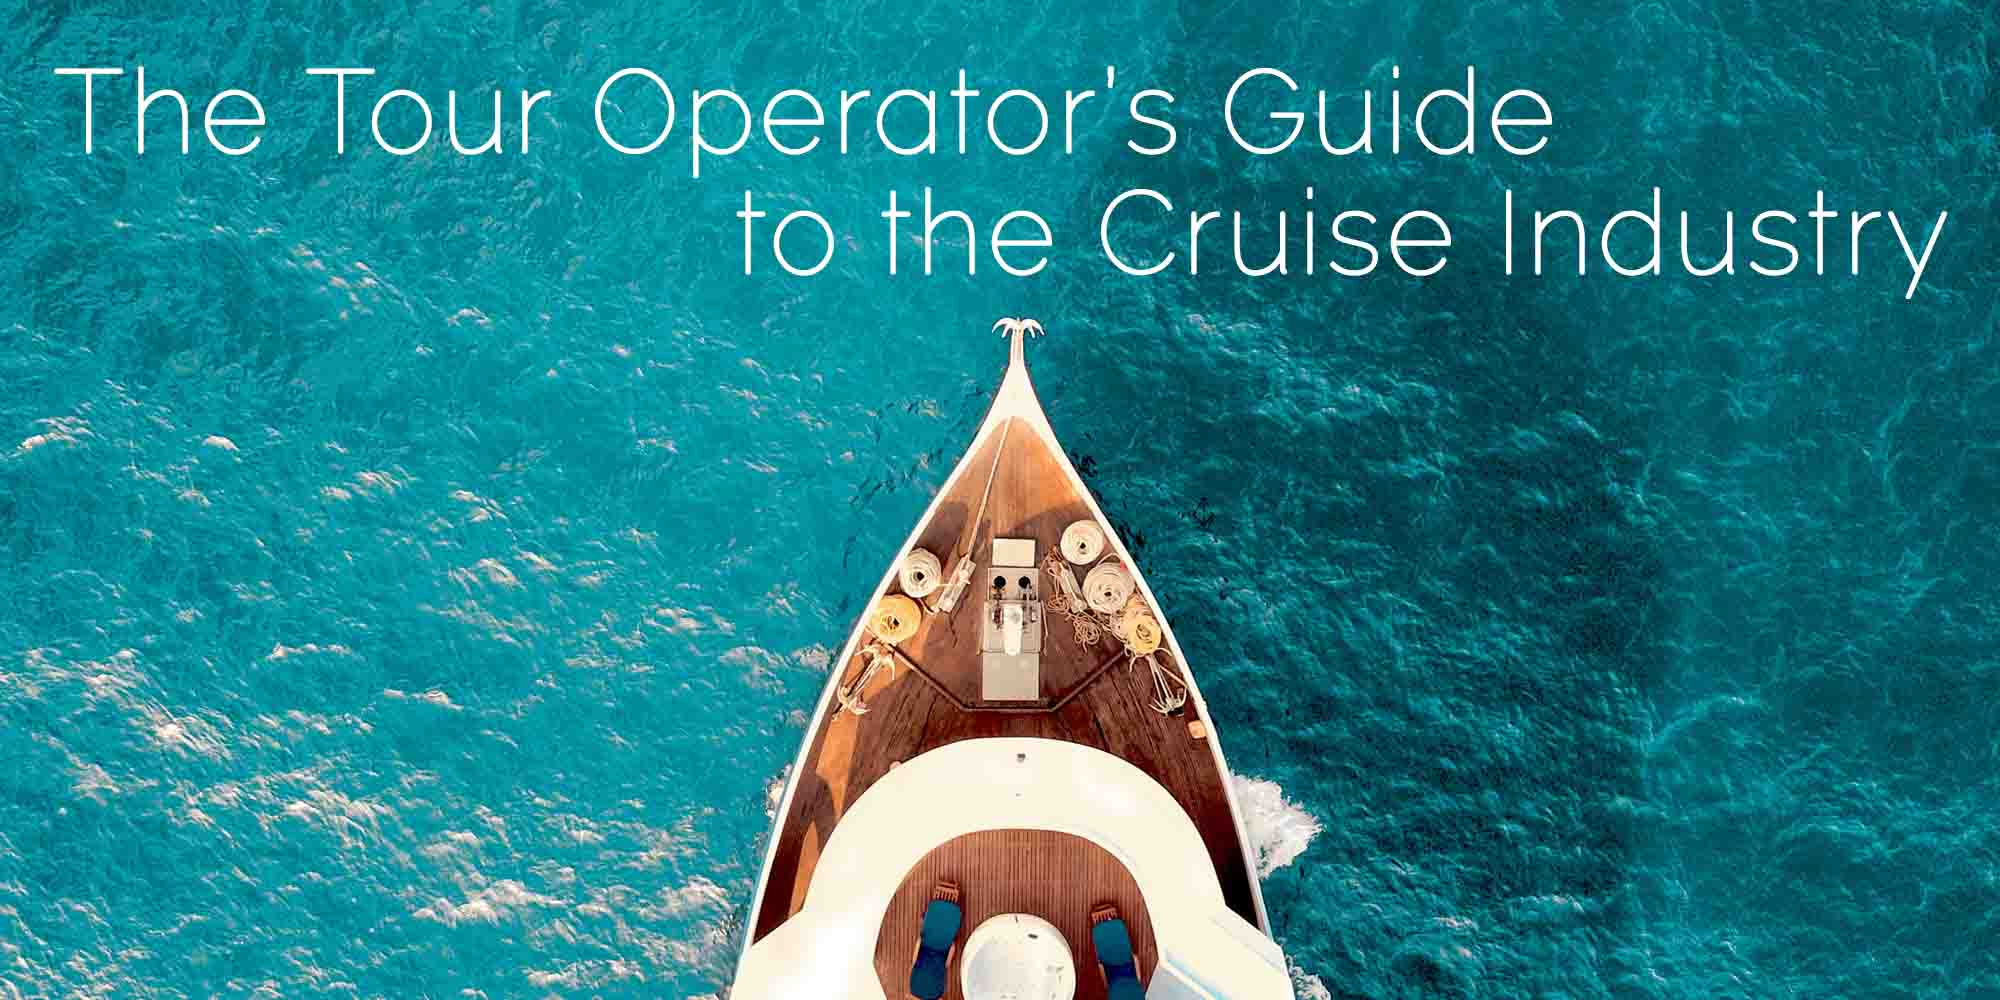 The tour operator's guide to the cruise industry